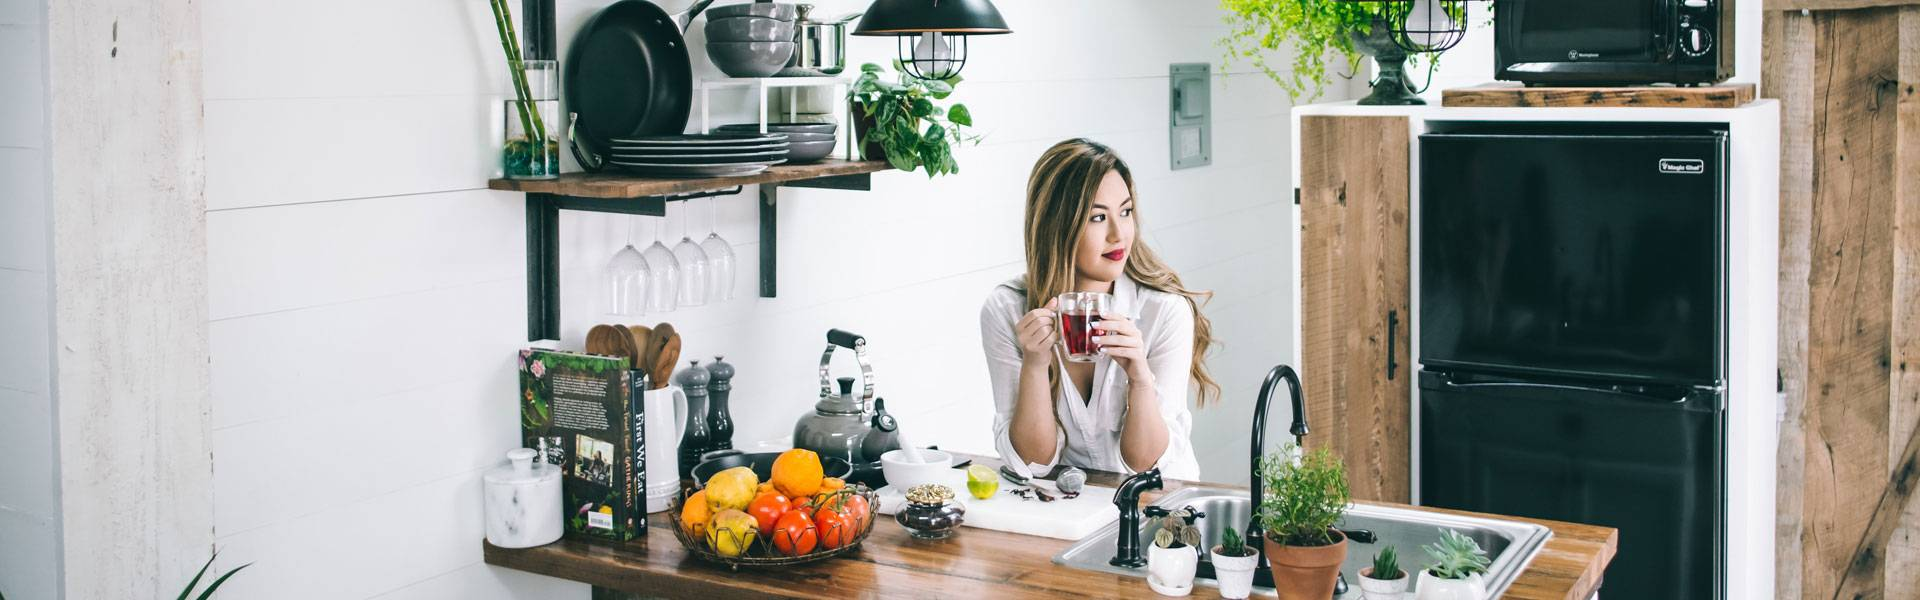 woman drinking tea and leaning on top of rustic wooden kitchen worktop surface